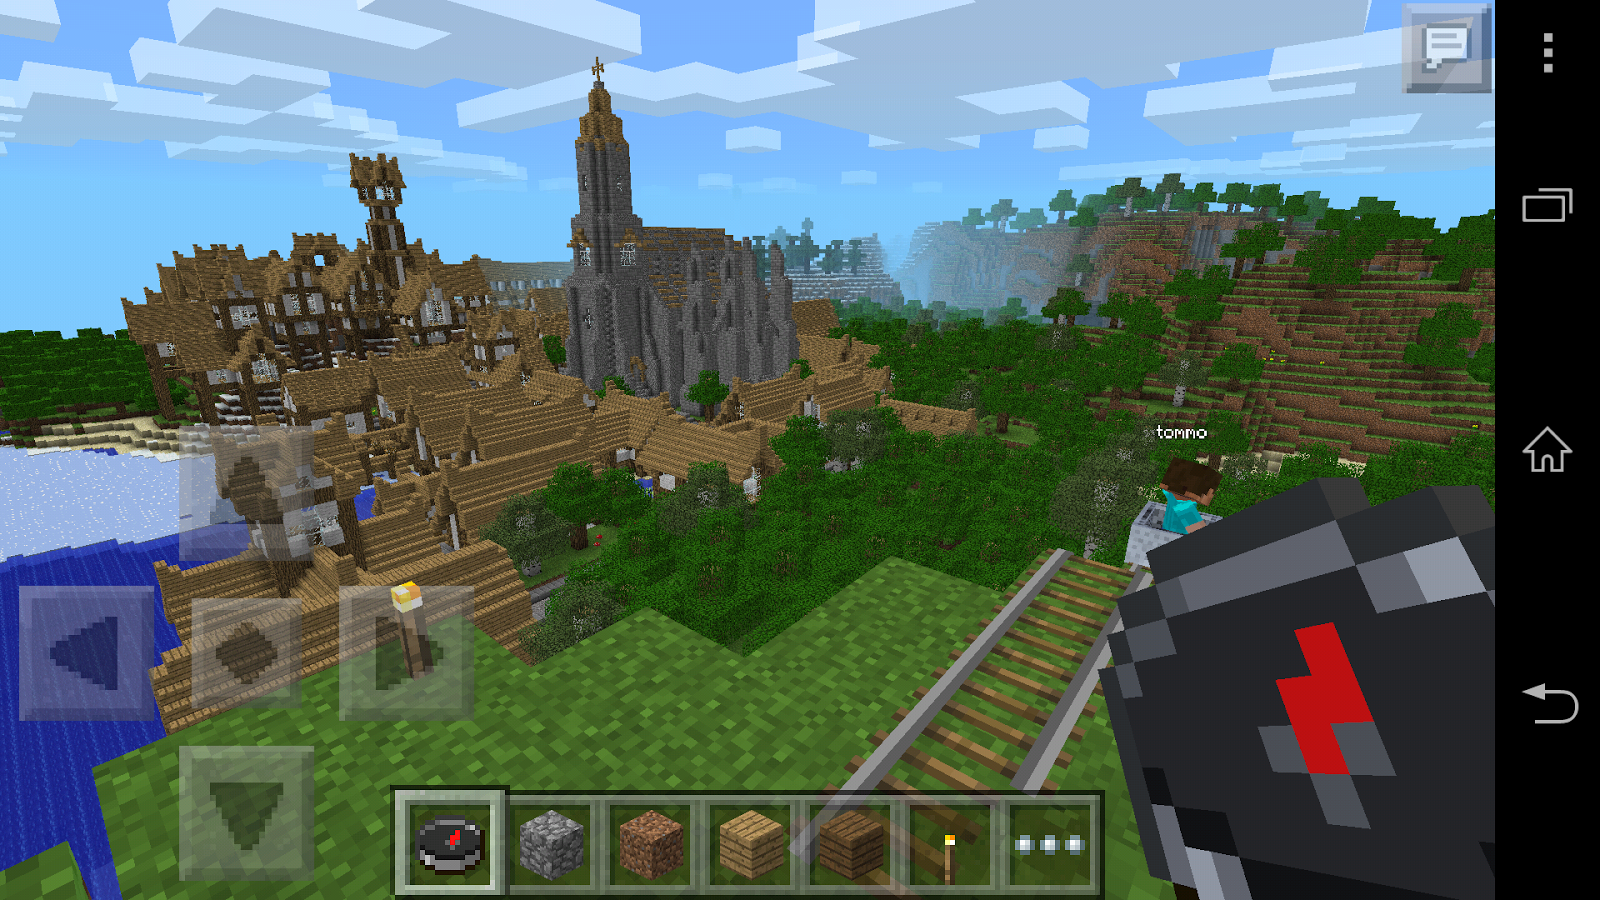 Minecraft: Pocket Edition worlds will get bigger